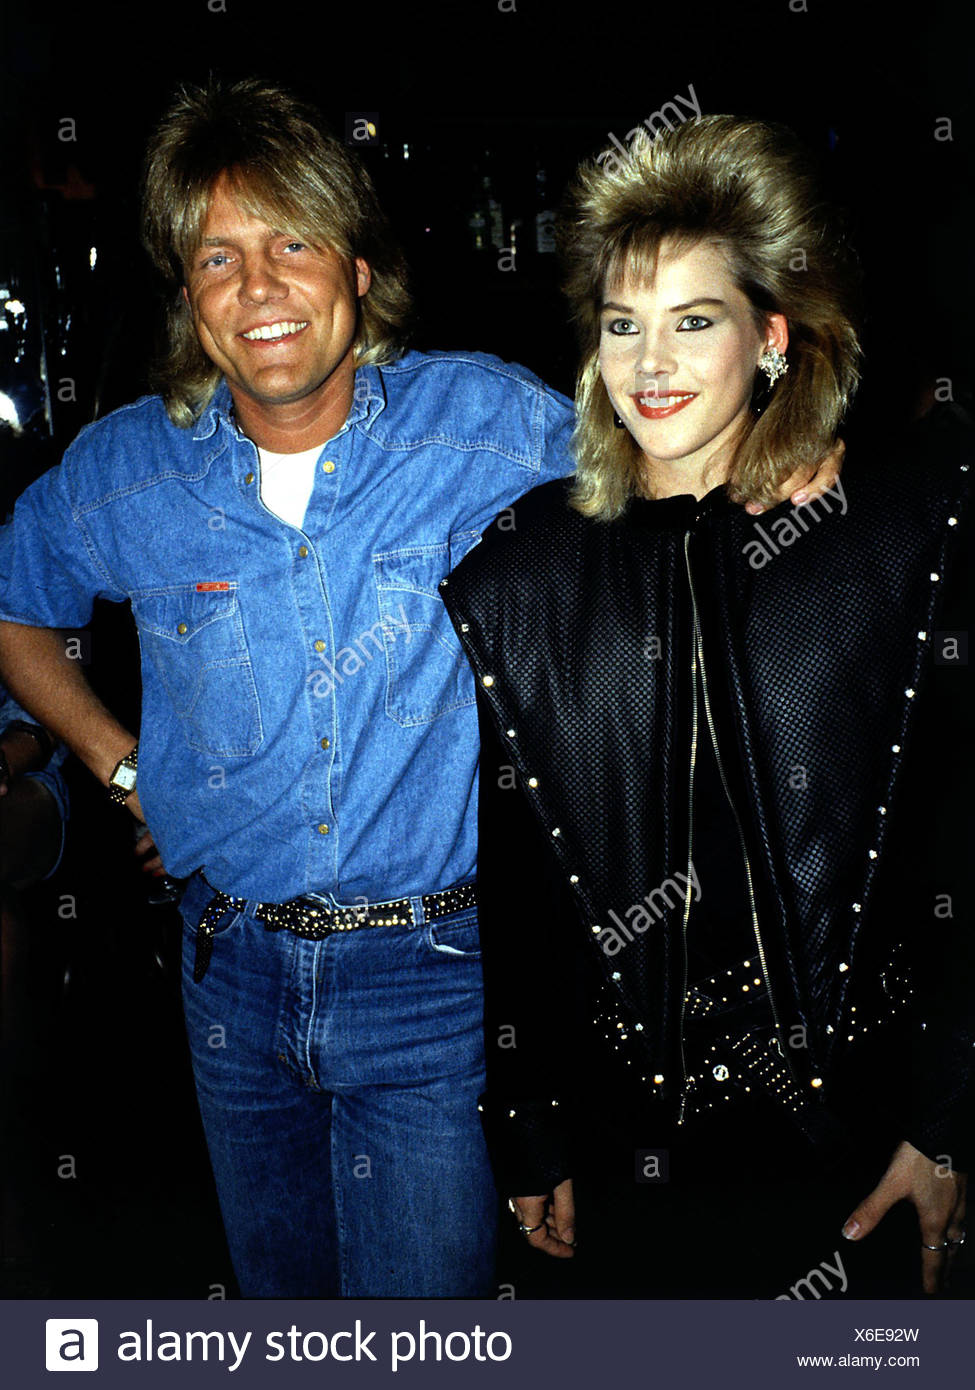 Bohlen Dieter, * 7.2.1954, German musician, songwriter, half length, as singer of the pop duo 'Modern Talking', with C.C. Catch, - Stock Image